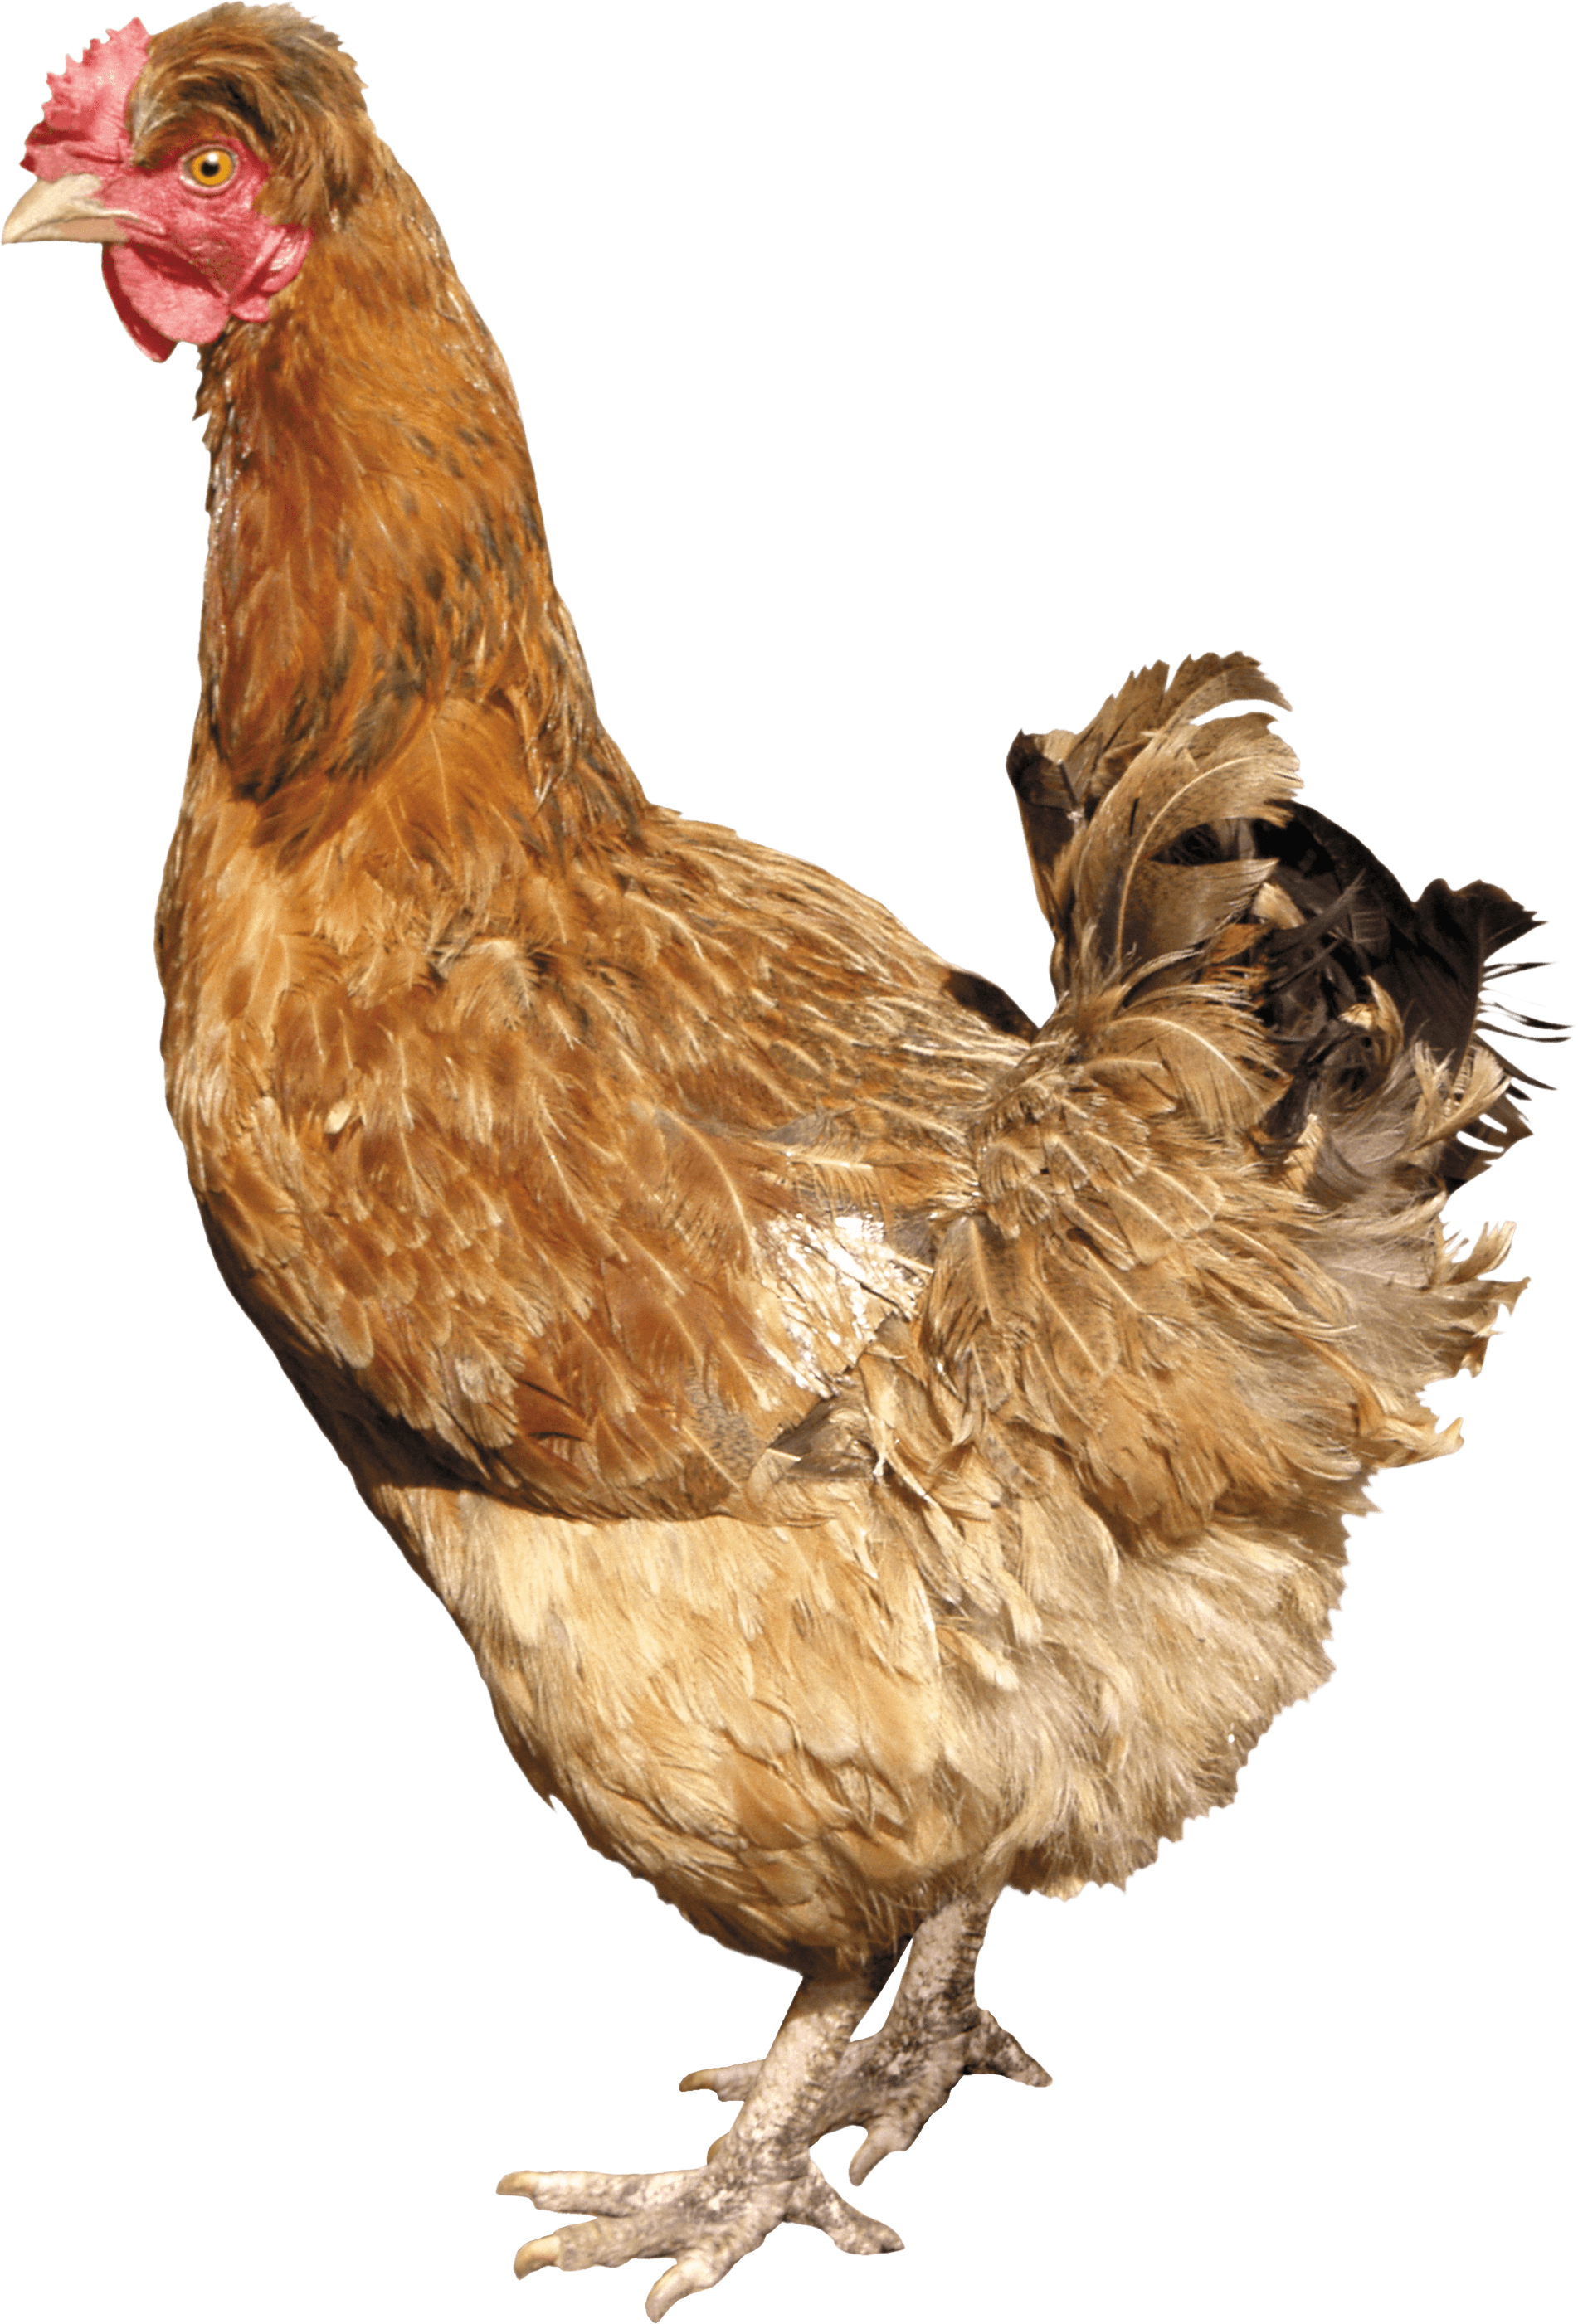 download chicken png image png image pngimg #13837